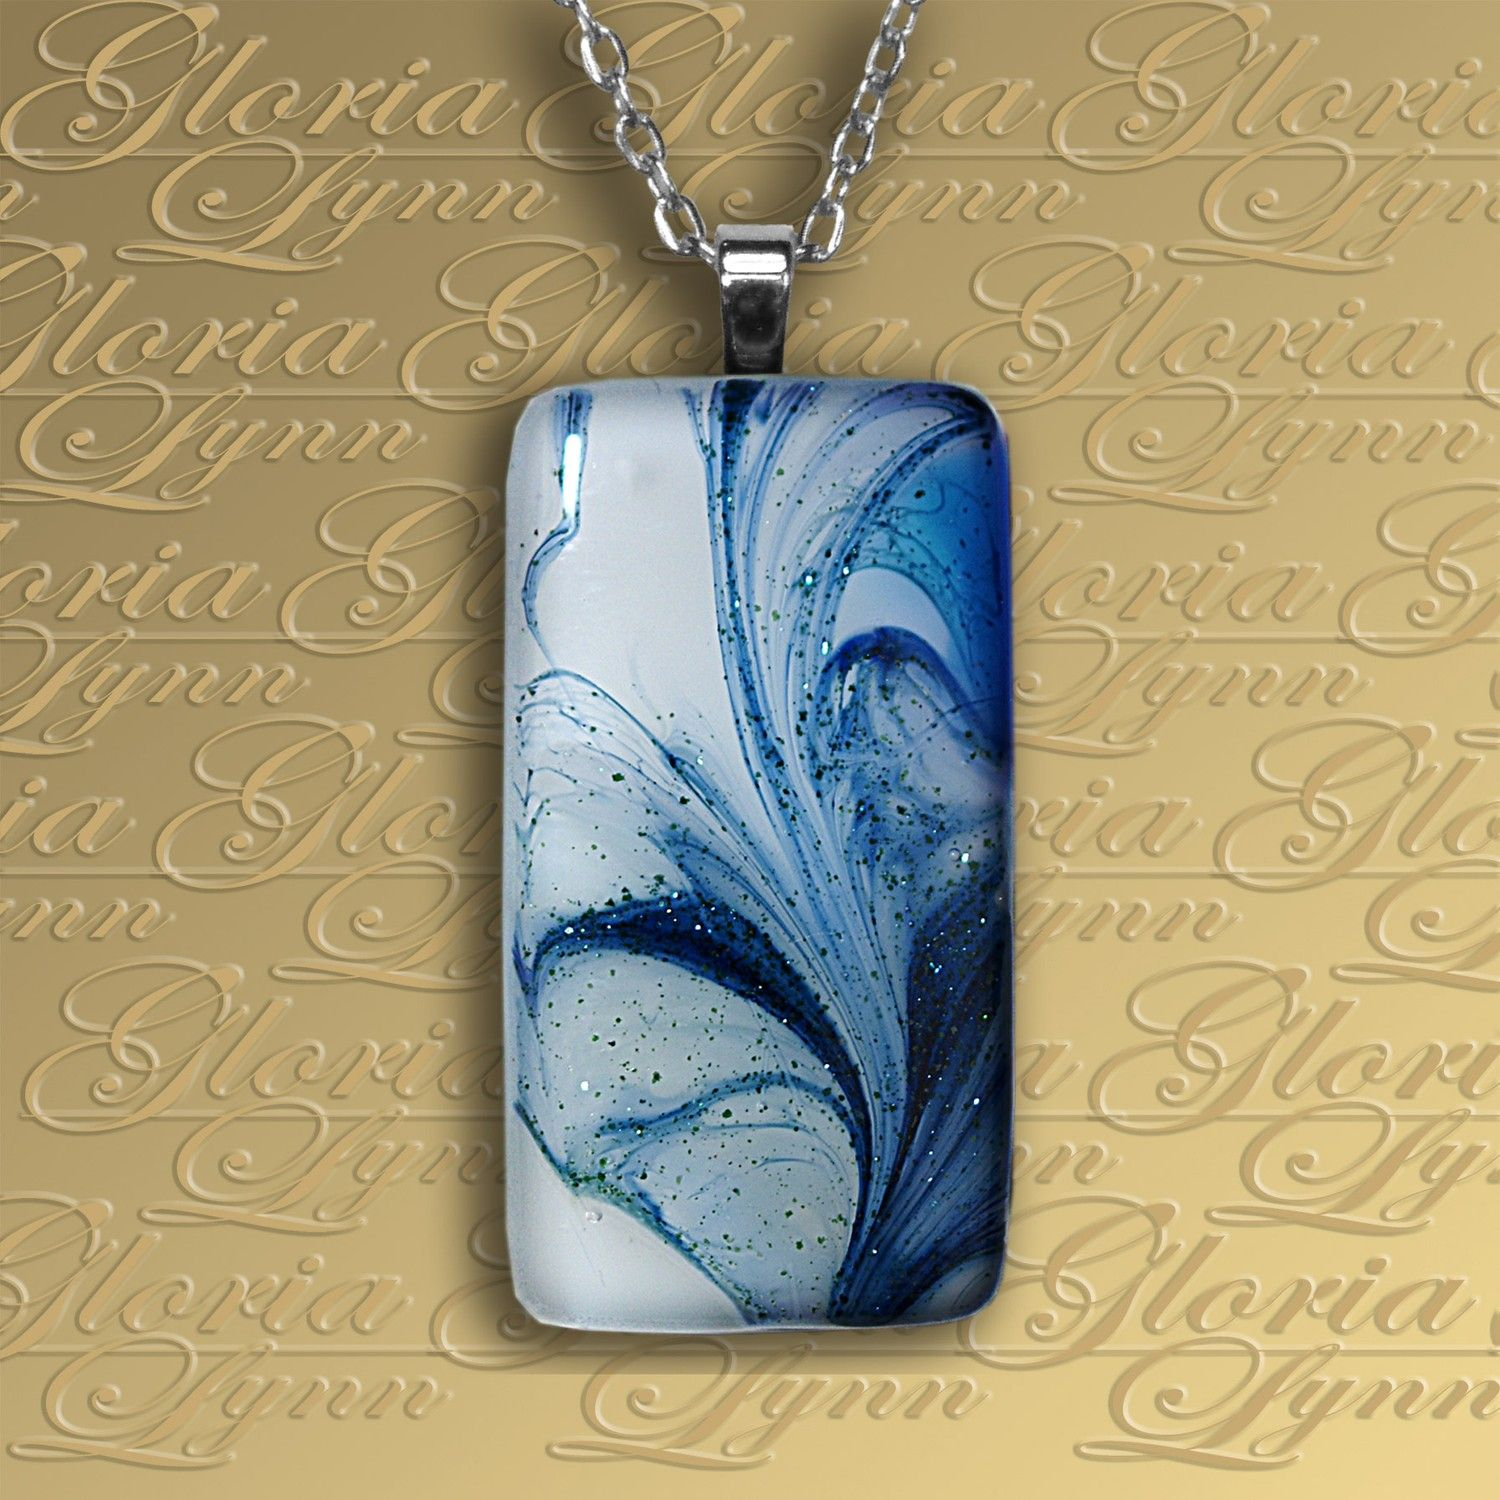 event and glass pendant fusedglasspendants events wisconsin slider image union fused activities calendar pendants